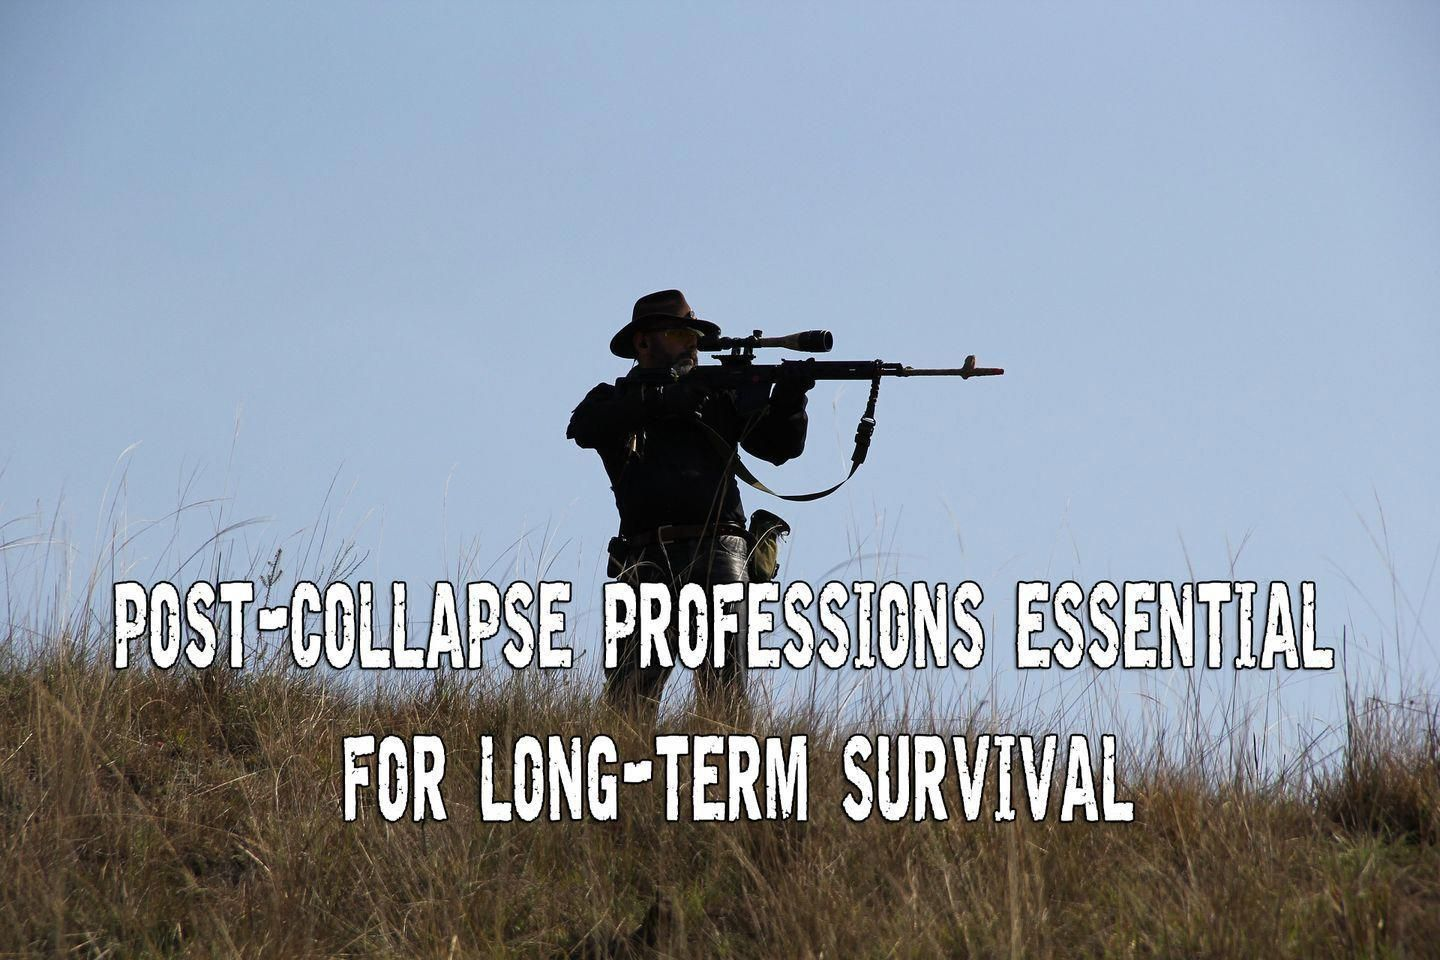 post-collapse-professions-essential-for-long-term-survival ...